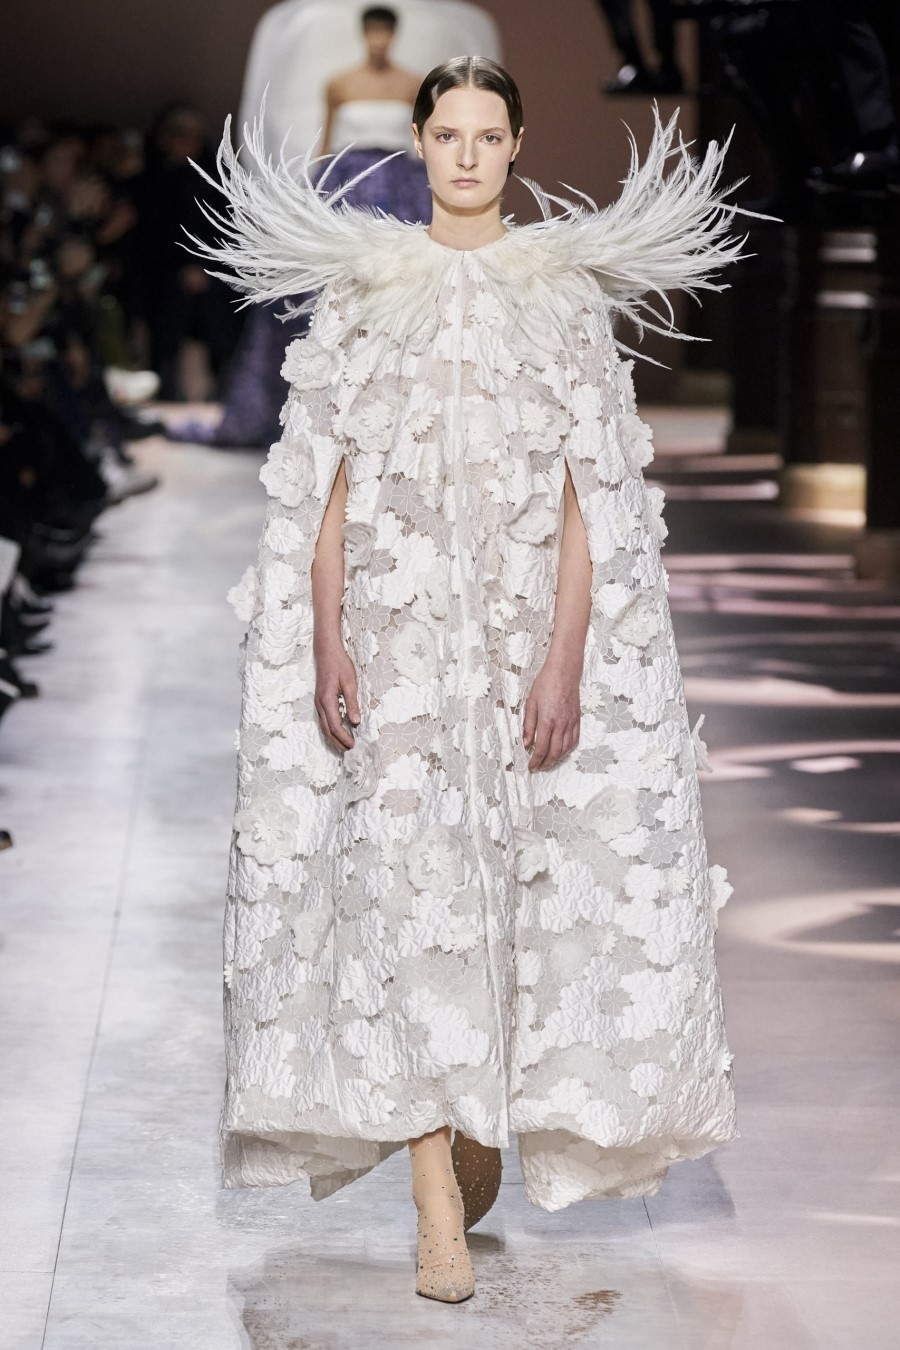 Givenchy Haute Couture Spring Summer 2020